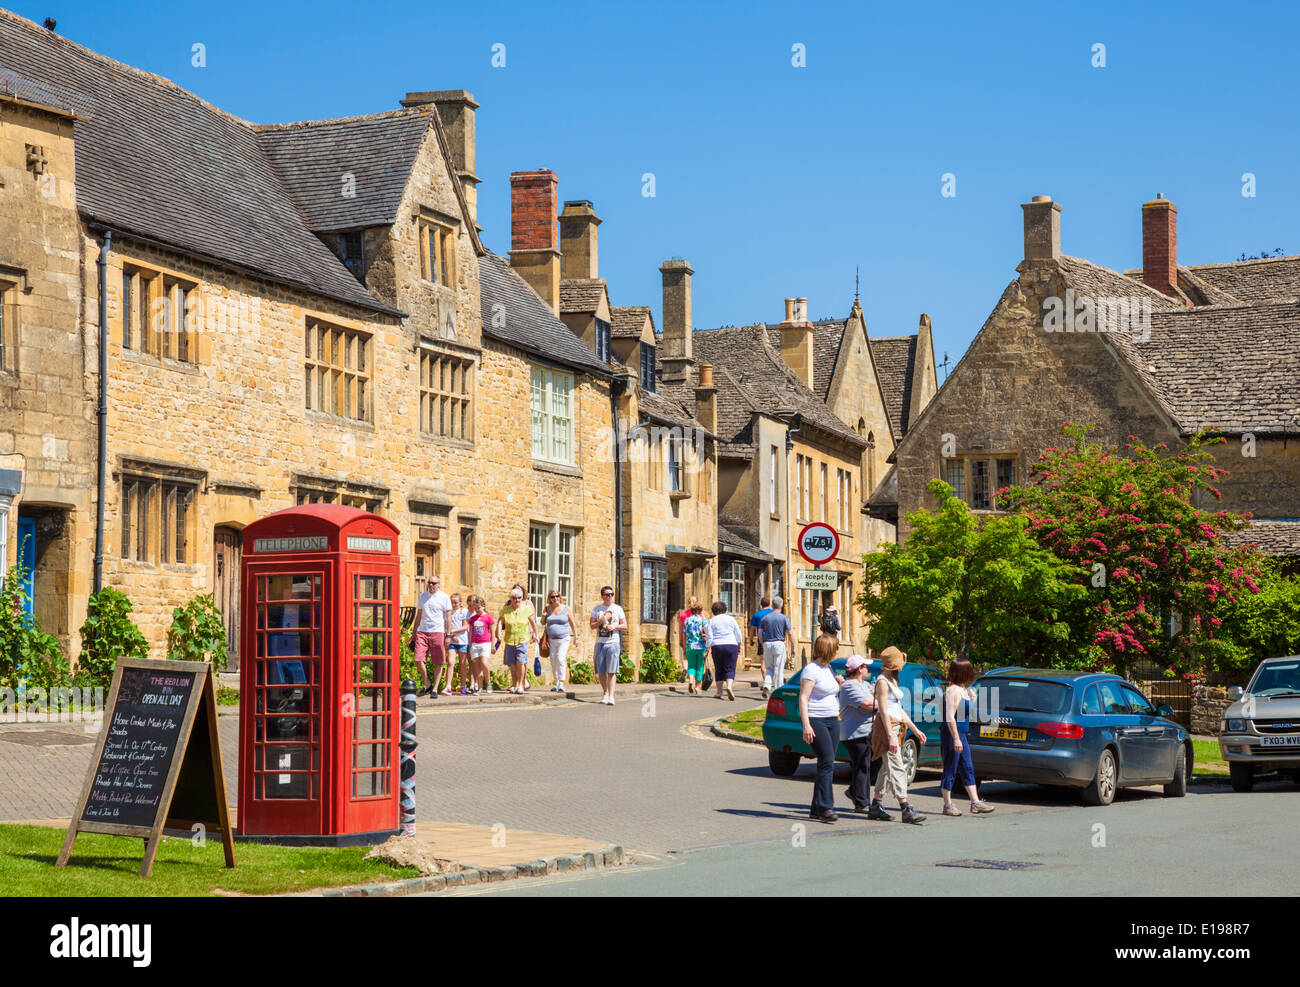 Chipping Campden High Street, Chipping Campden, The Cotswolds Gloucestershire England UK EU Europe - Stock Image